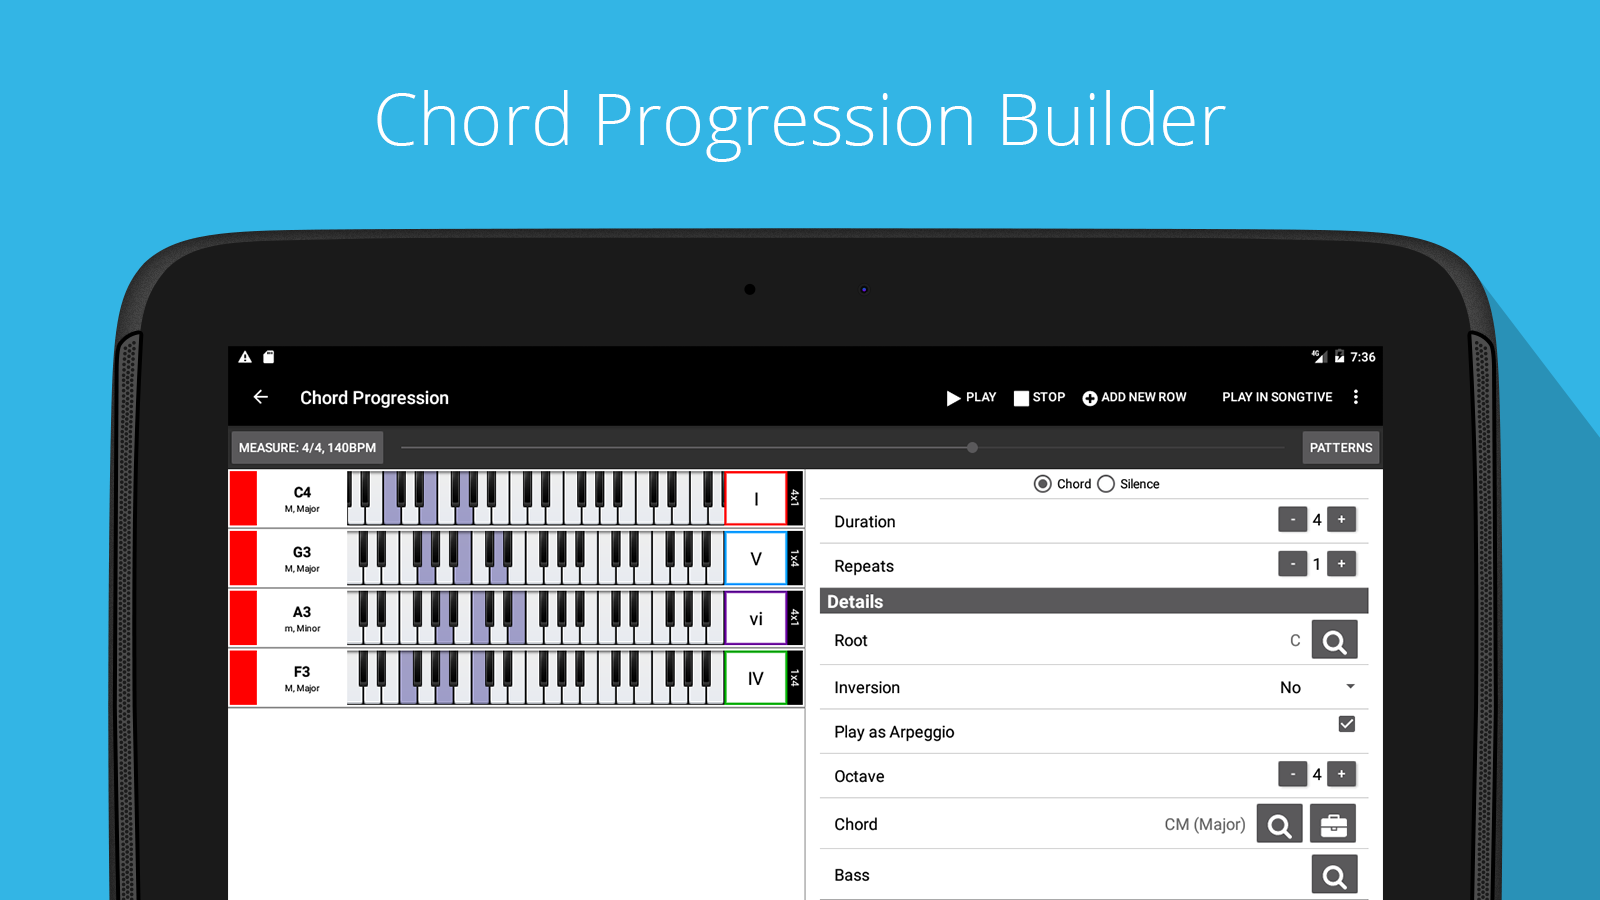 Piano chord scale progression companion 617102 apk download piano chord scale progression companion 617102 screenshot 13 hexwebz Images